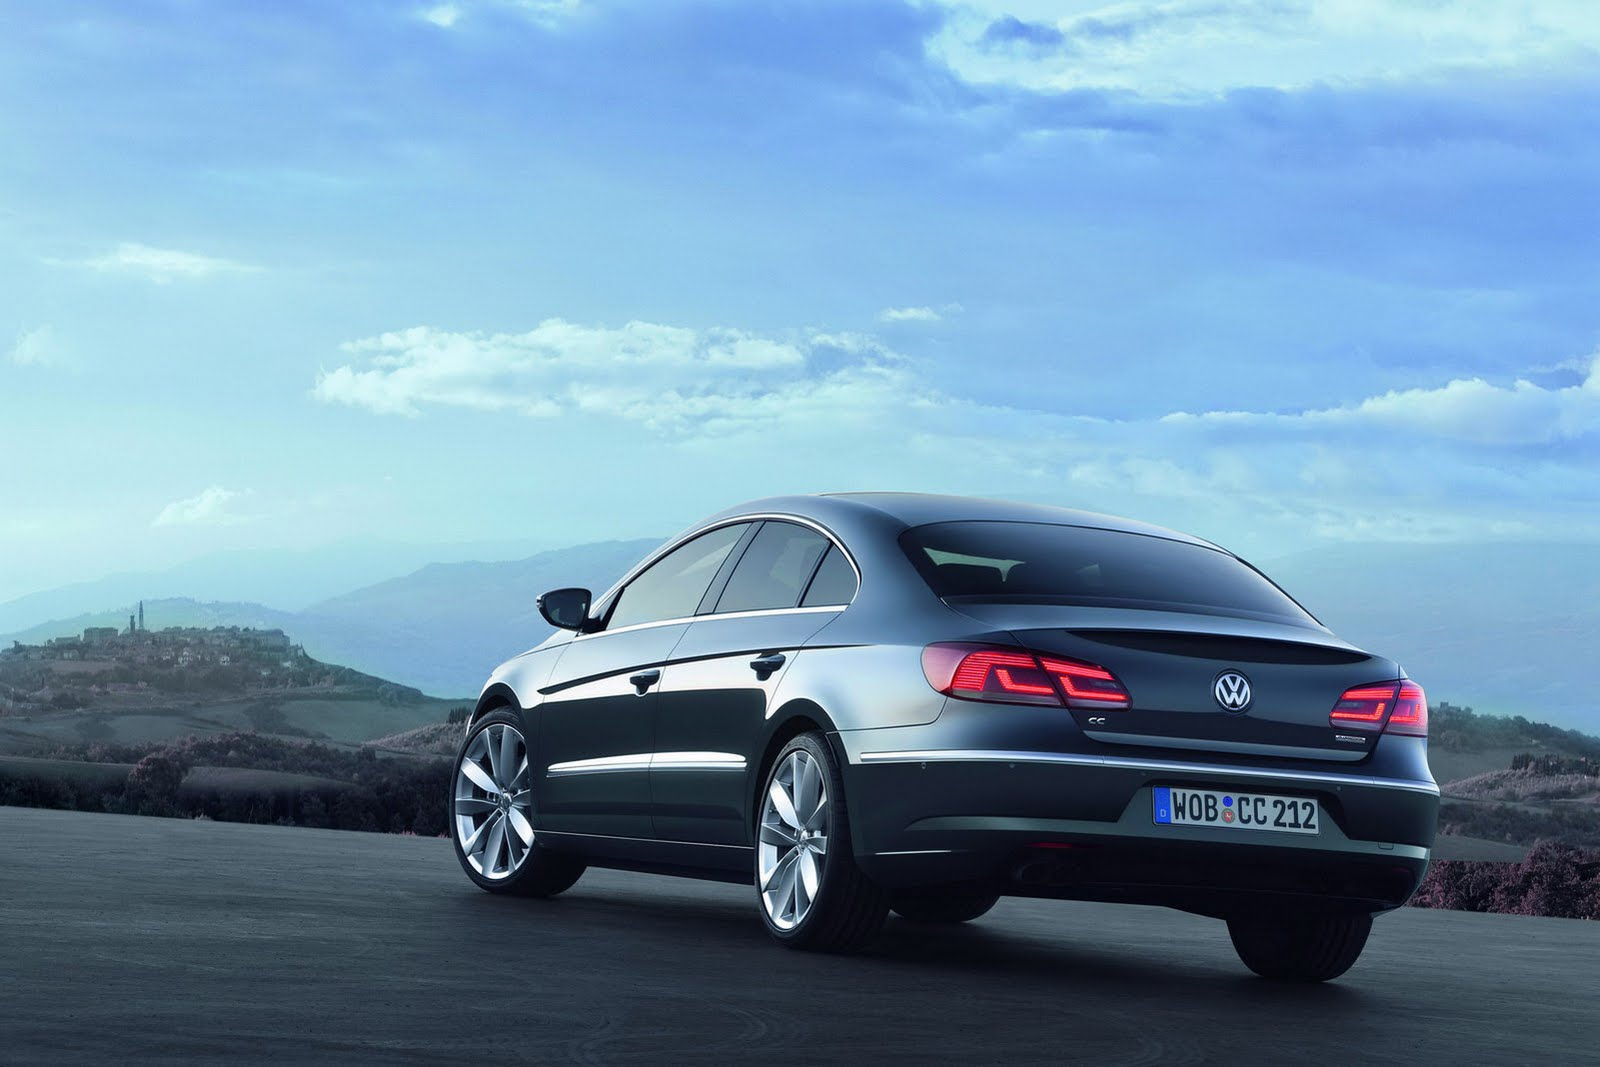 2013 volkswagen passat cc facelift unveiled autoevolution. Black Bedroom Furniture Sets. Home Design Ideas